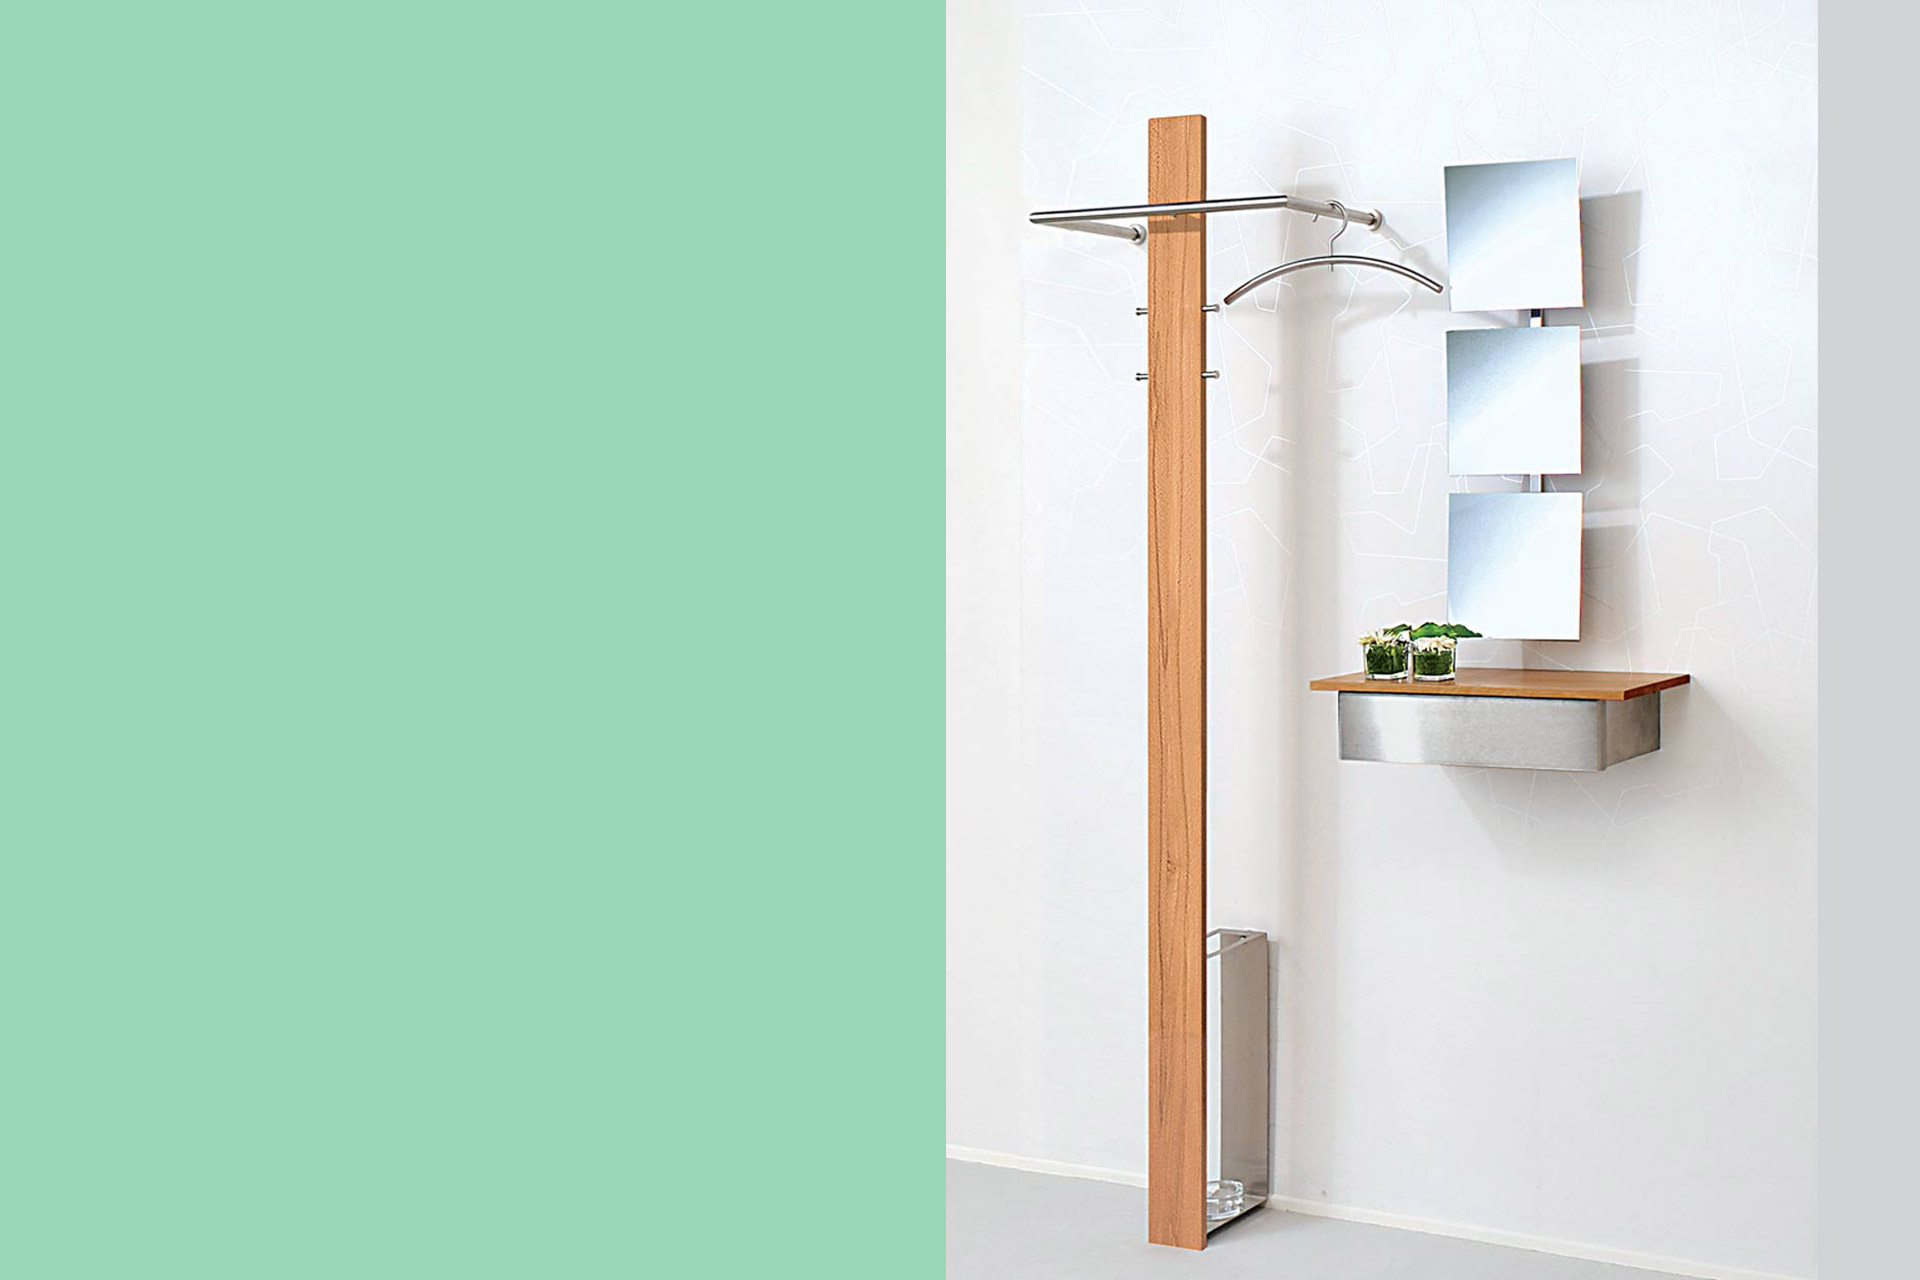 Wand Garderobe Wandgarderobe Mister T Wohnopposition Berlin